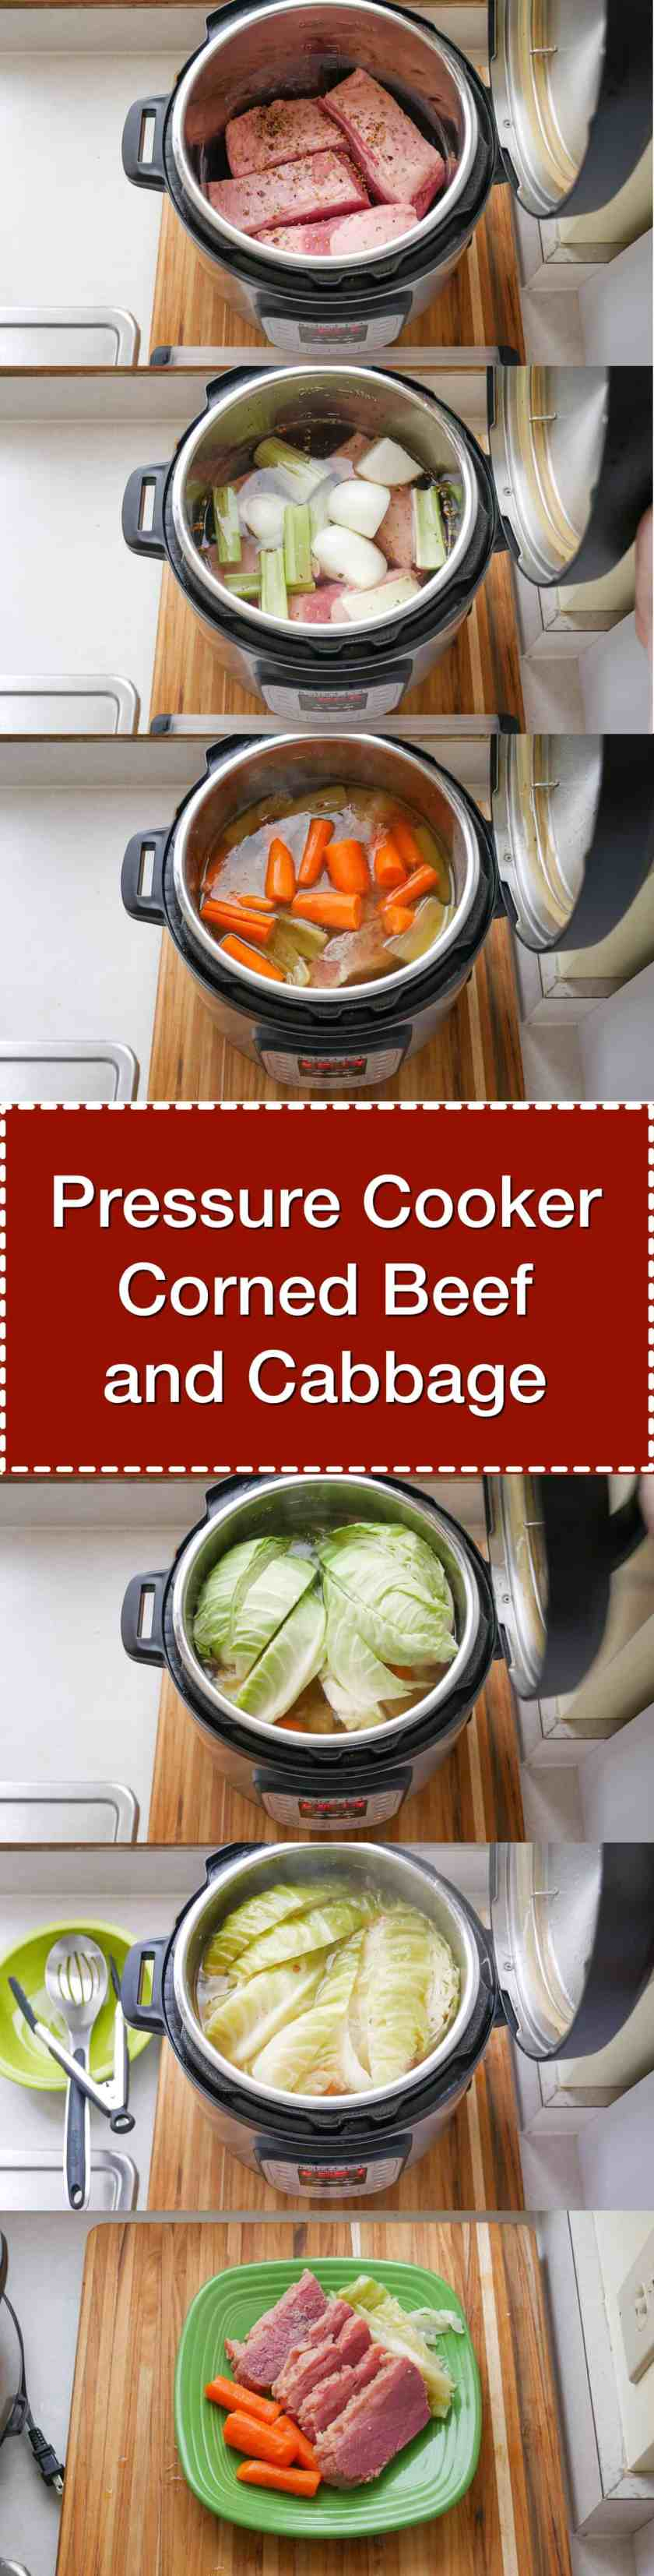 Pressure Cooker Corned Beef and Cabbage  - done in about an hour and a half, thanks to the pressure cooker. Perfect for St. Patrick's Day.